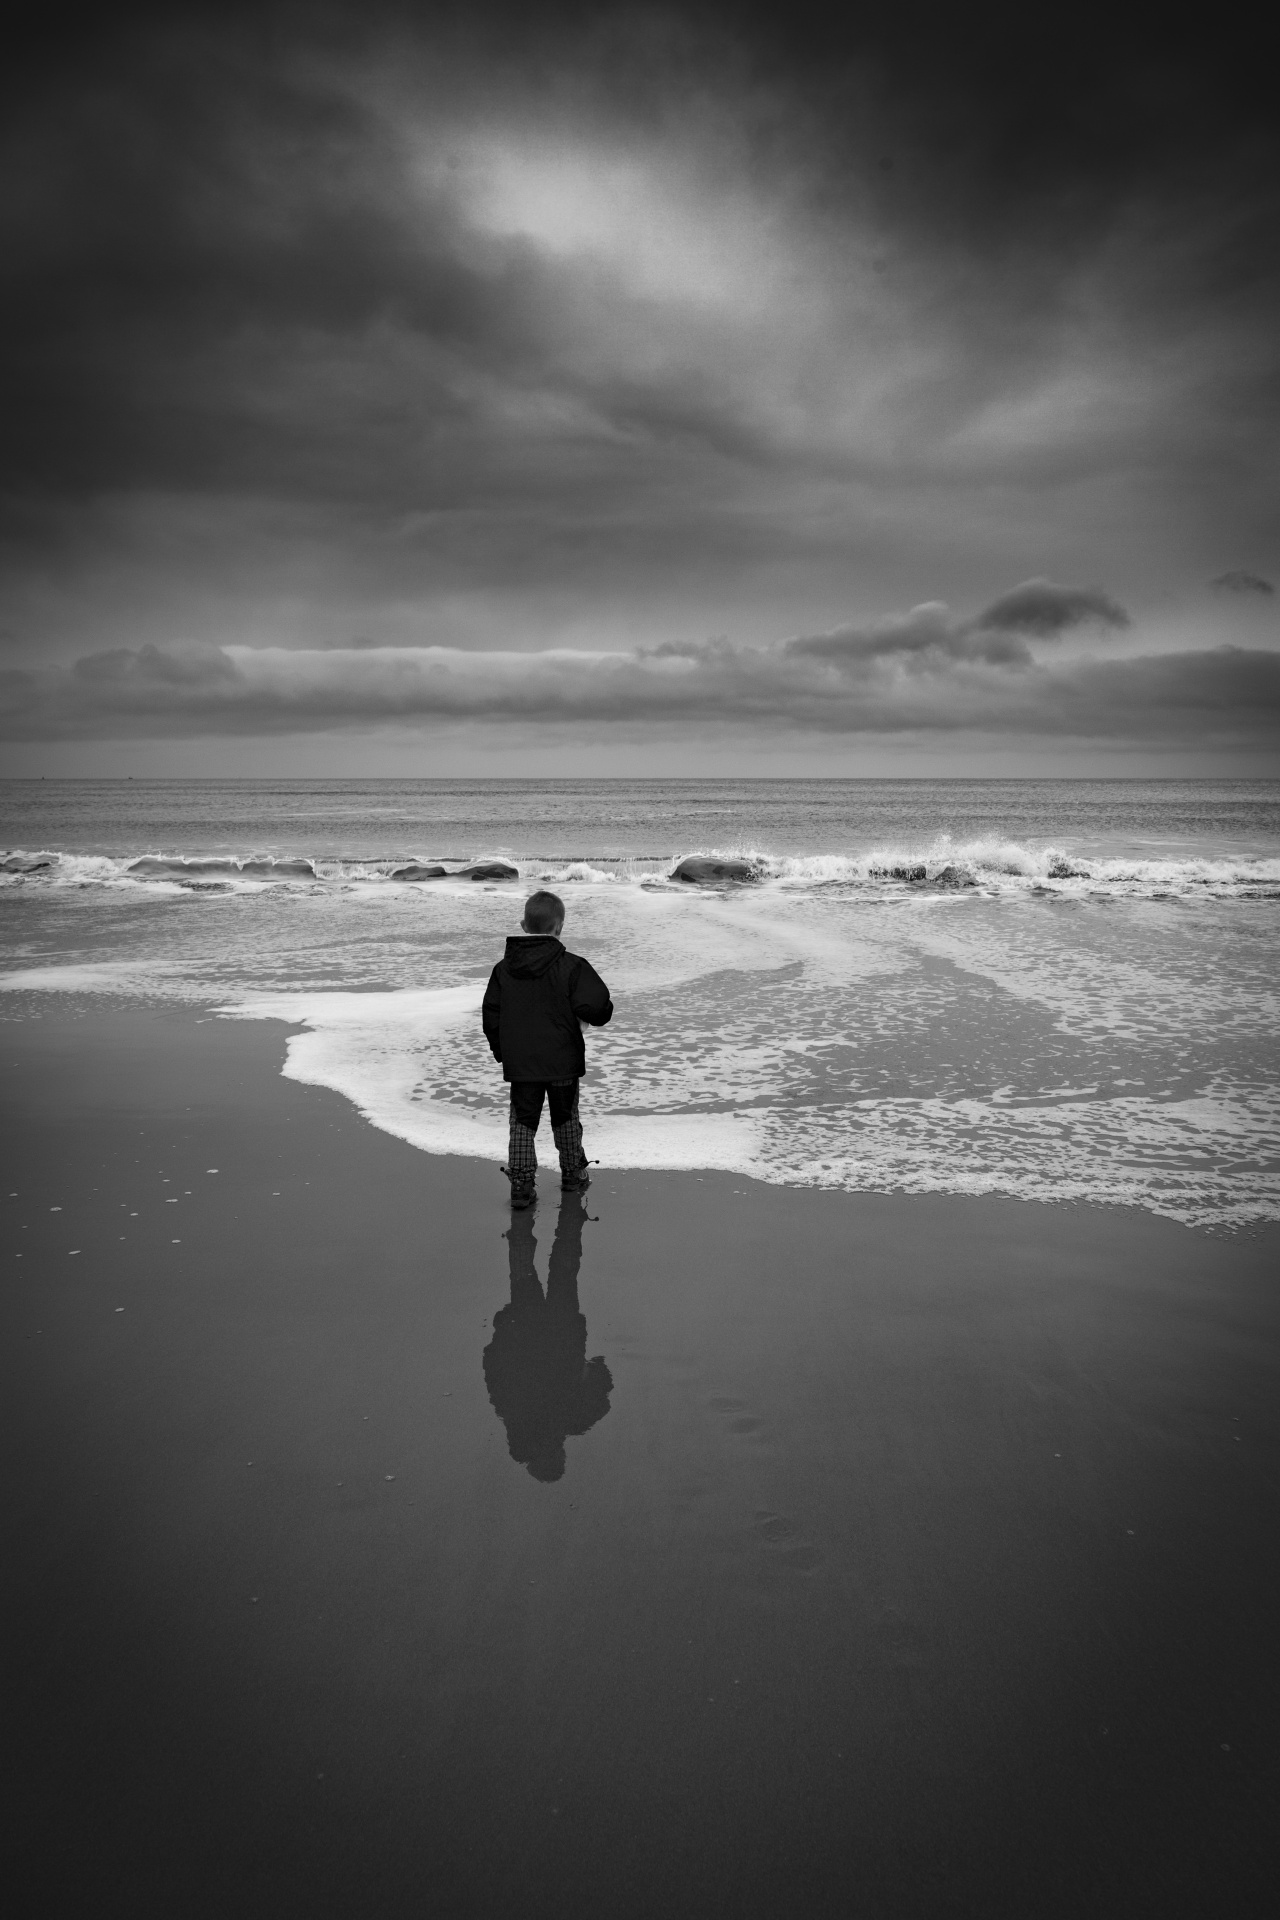 Alone Boy Free Stock Photo - Public Domain Pictures